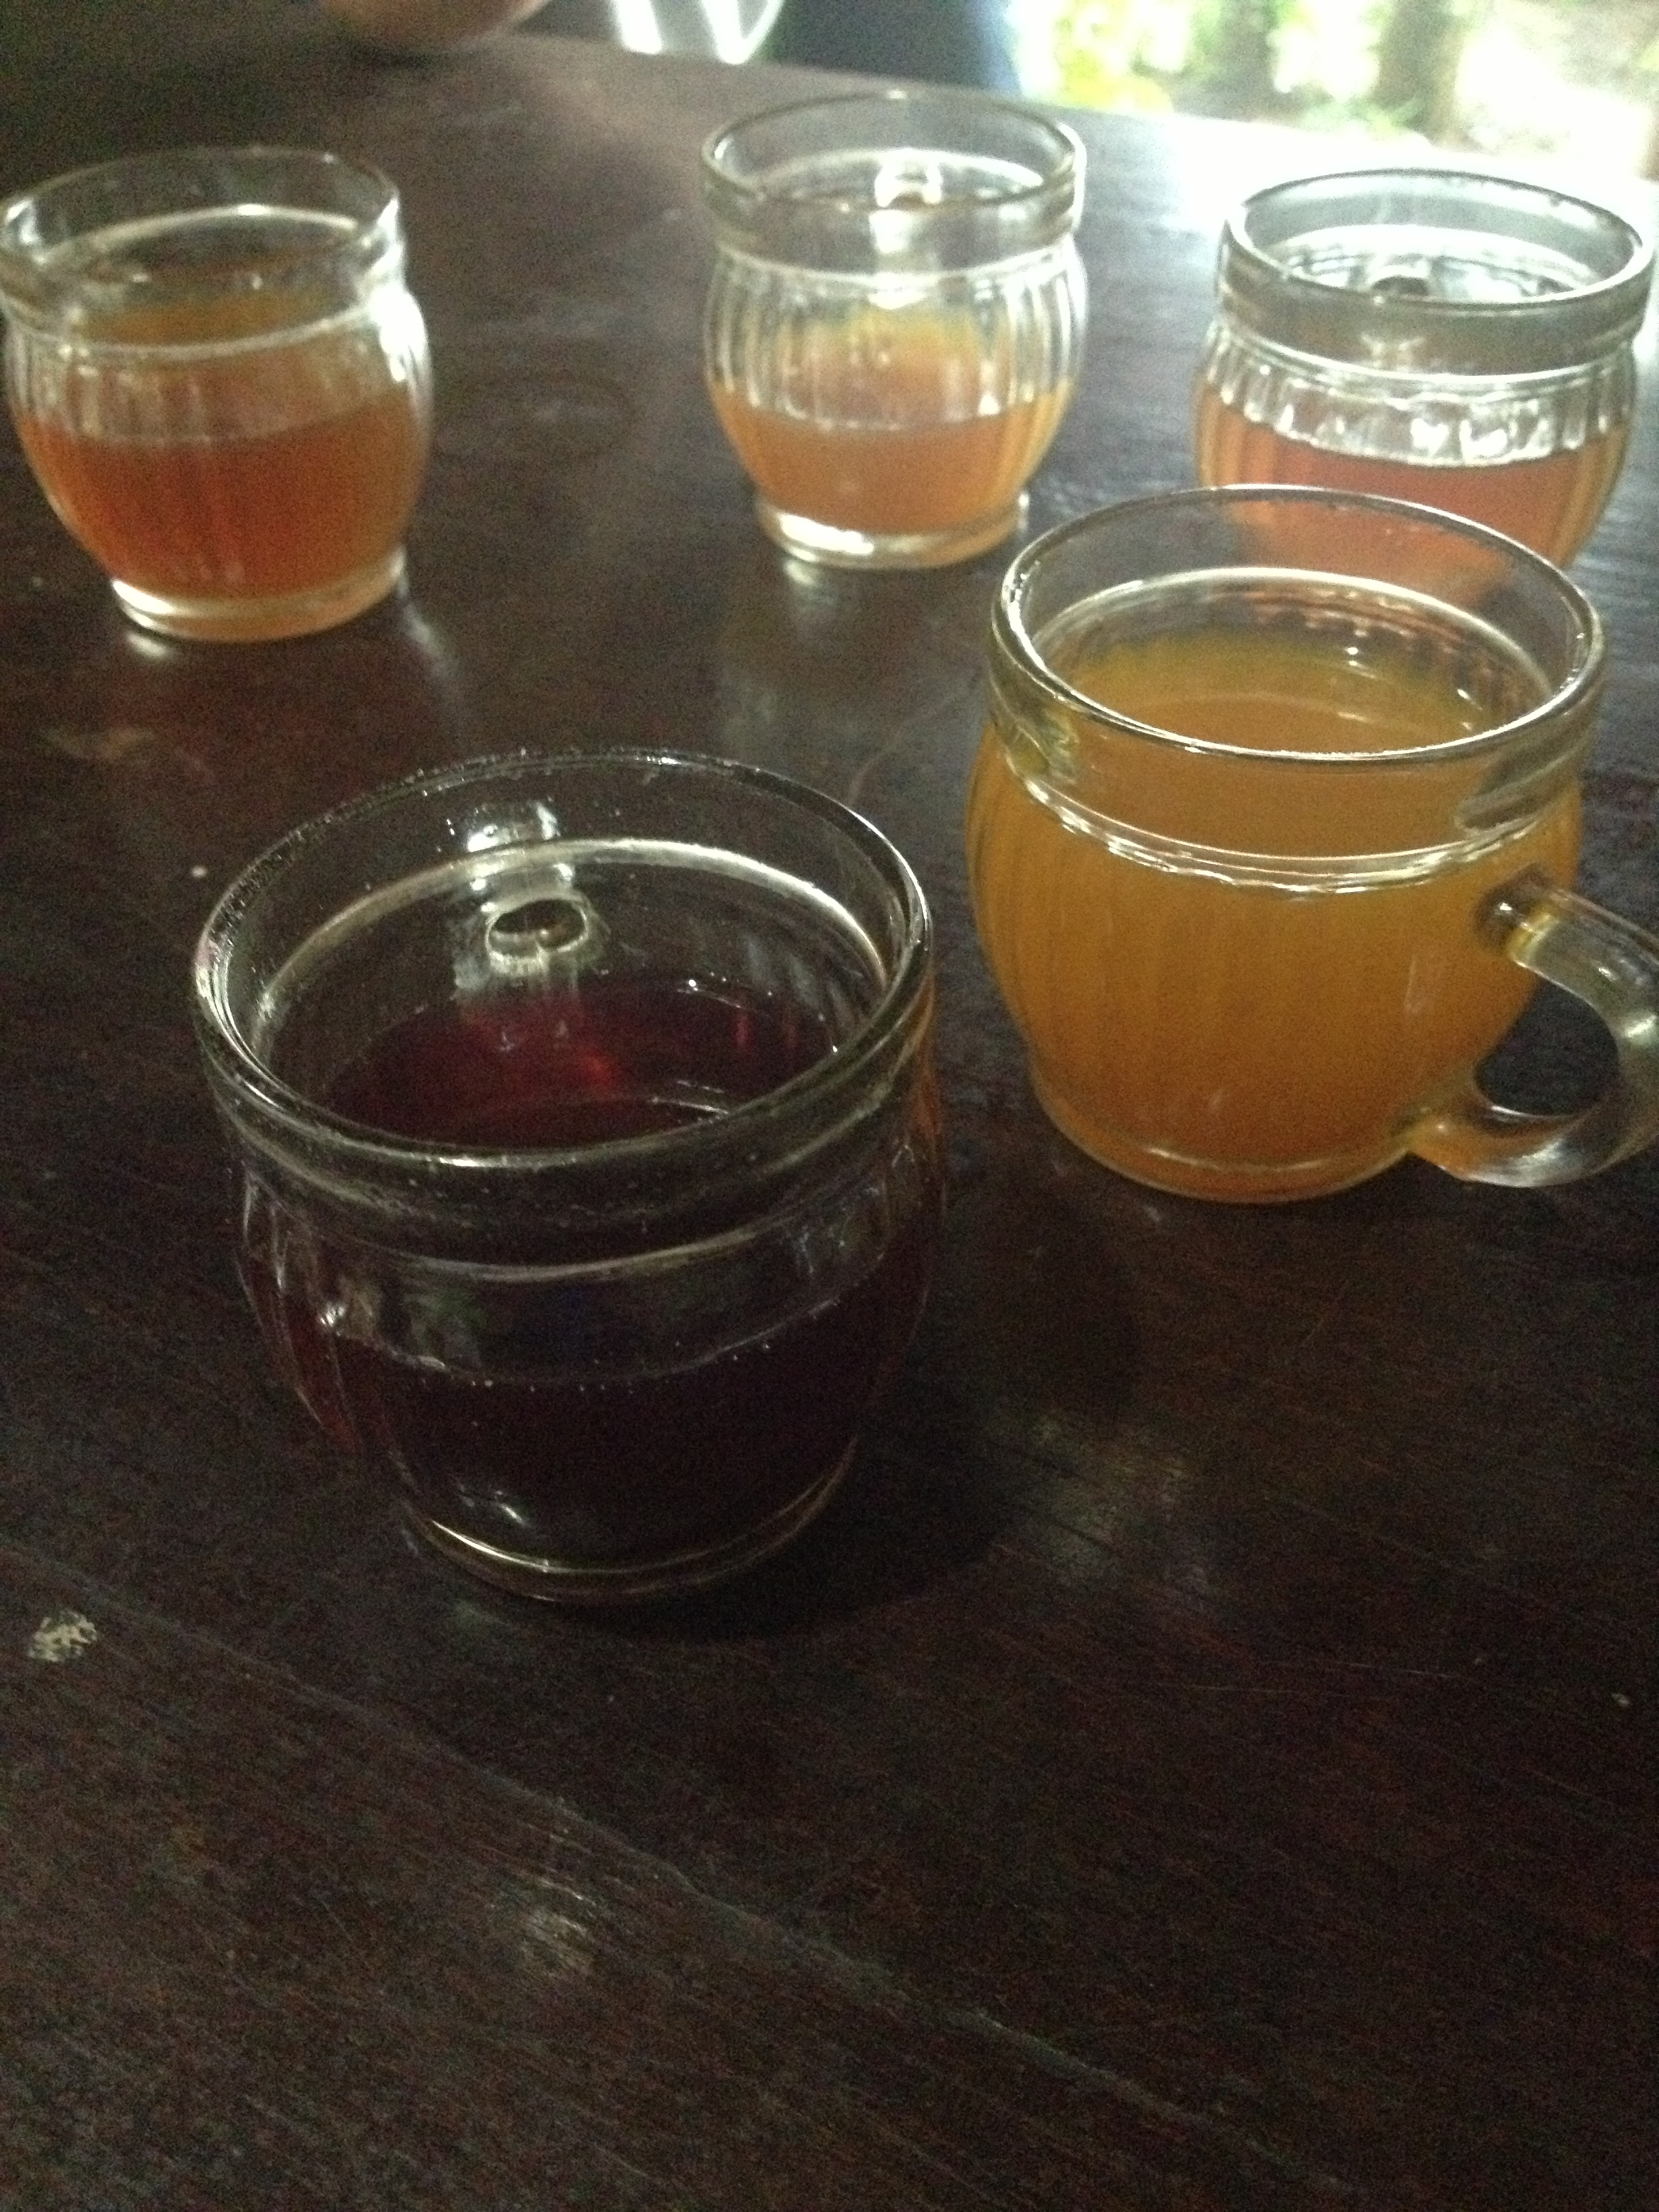 Coffe and tea sampling.